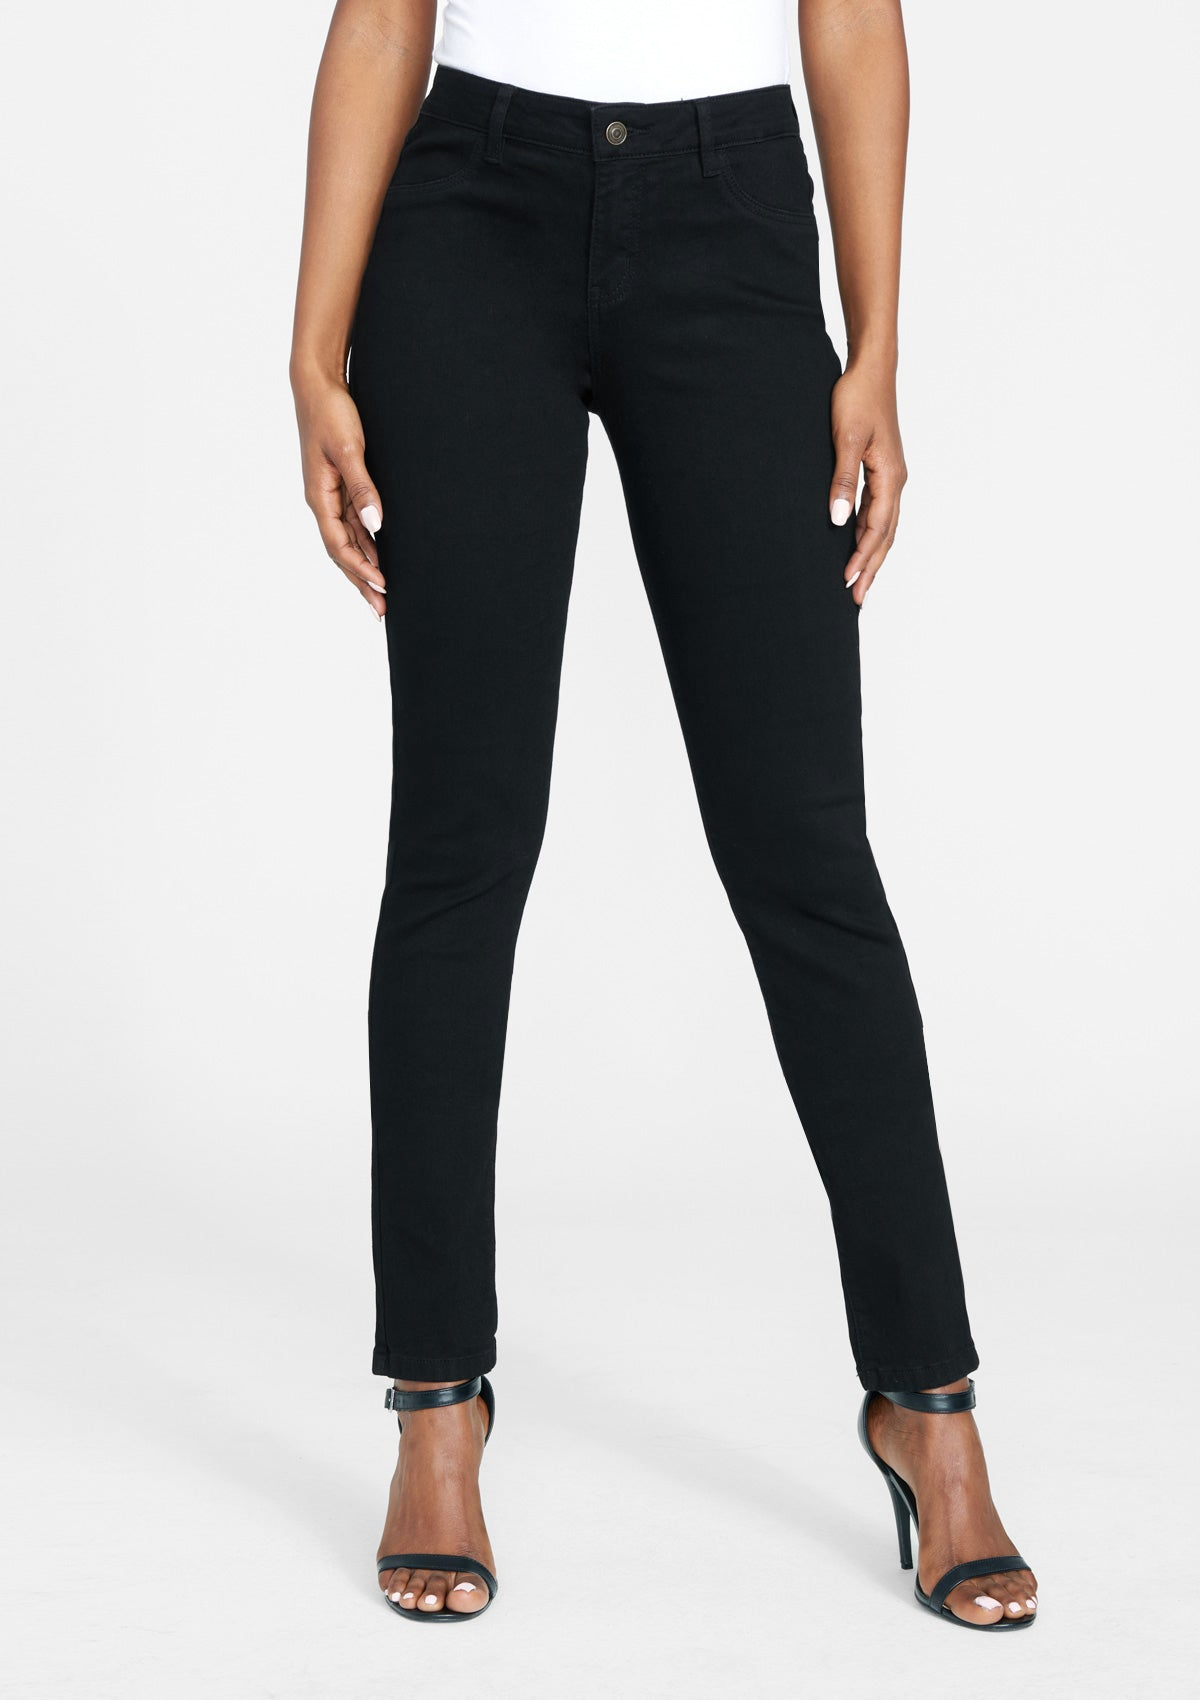 Alloy Apparel Tall Sofia Stretch Plus Size Jean Leggings for Women in Black Size 8 length 35 | Cotton